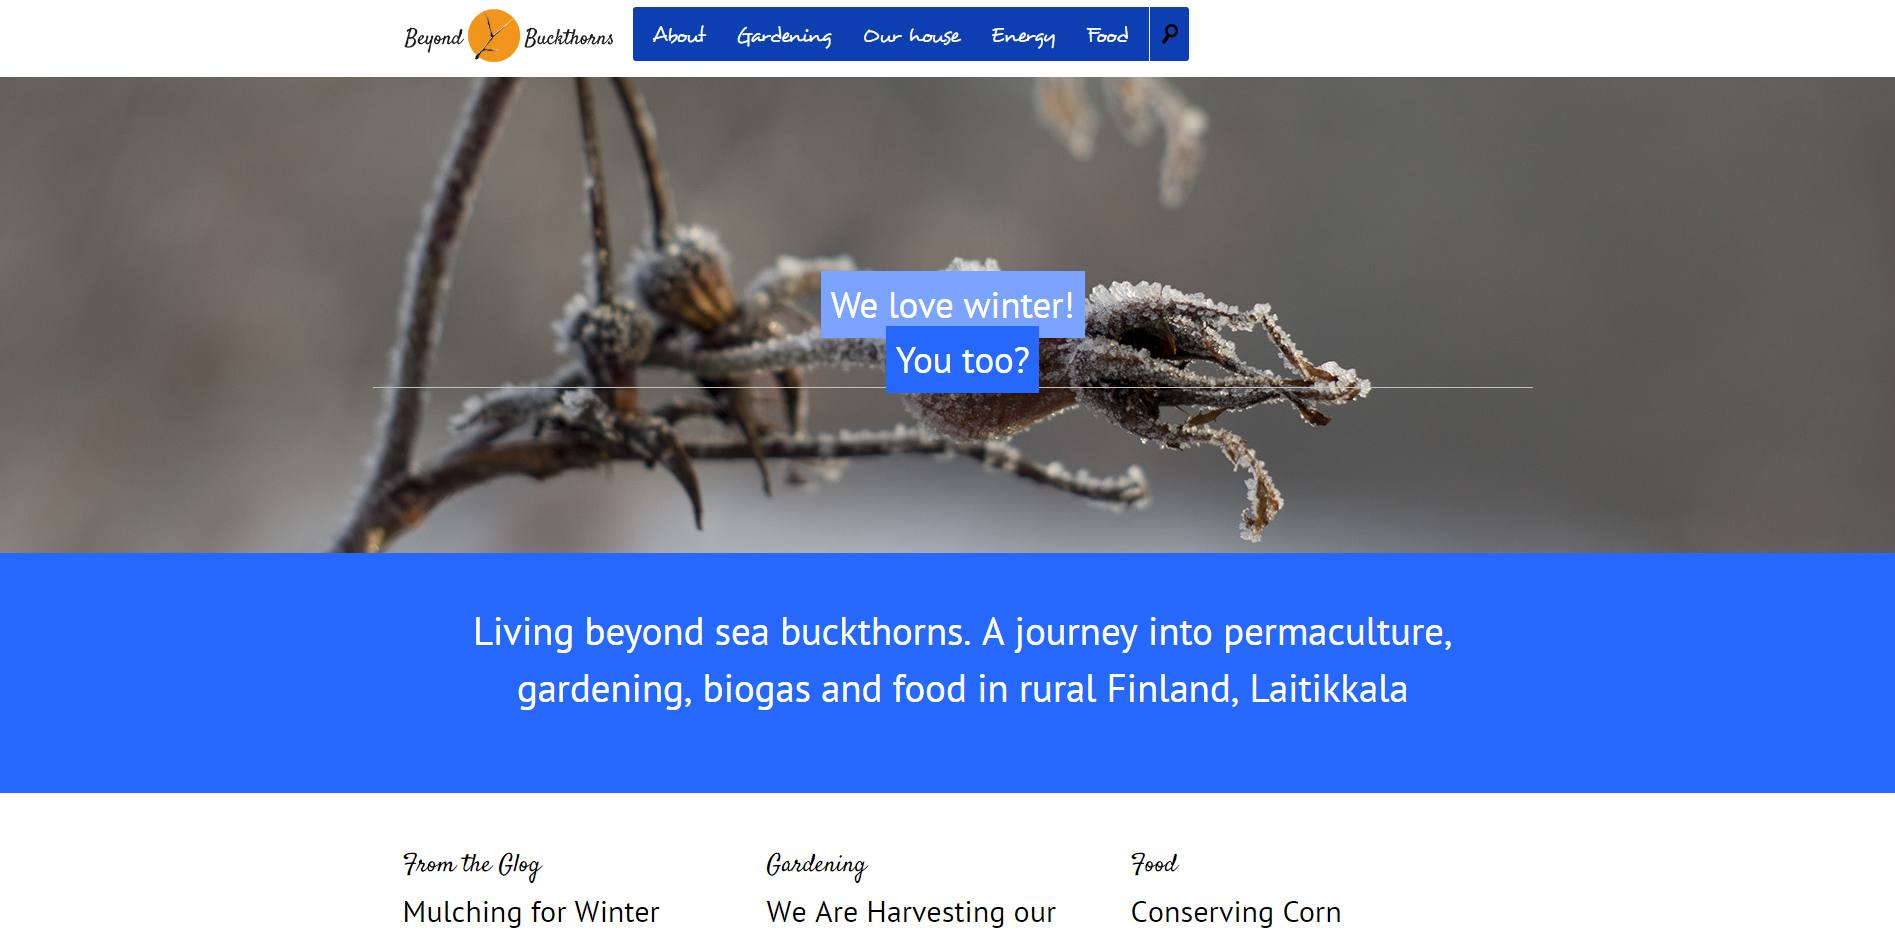 Beyondbuckthorns - a journey into permaculture and biogas in Finland